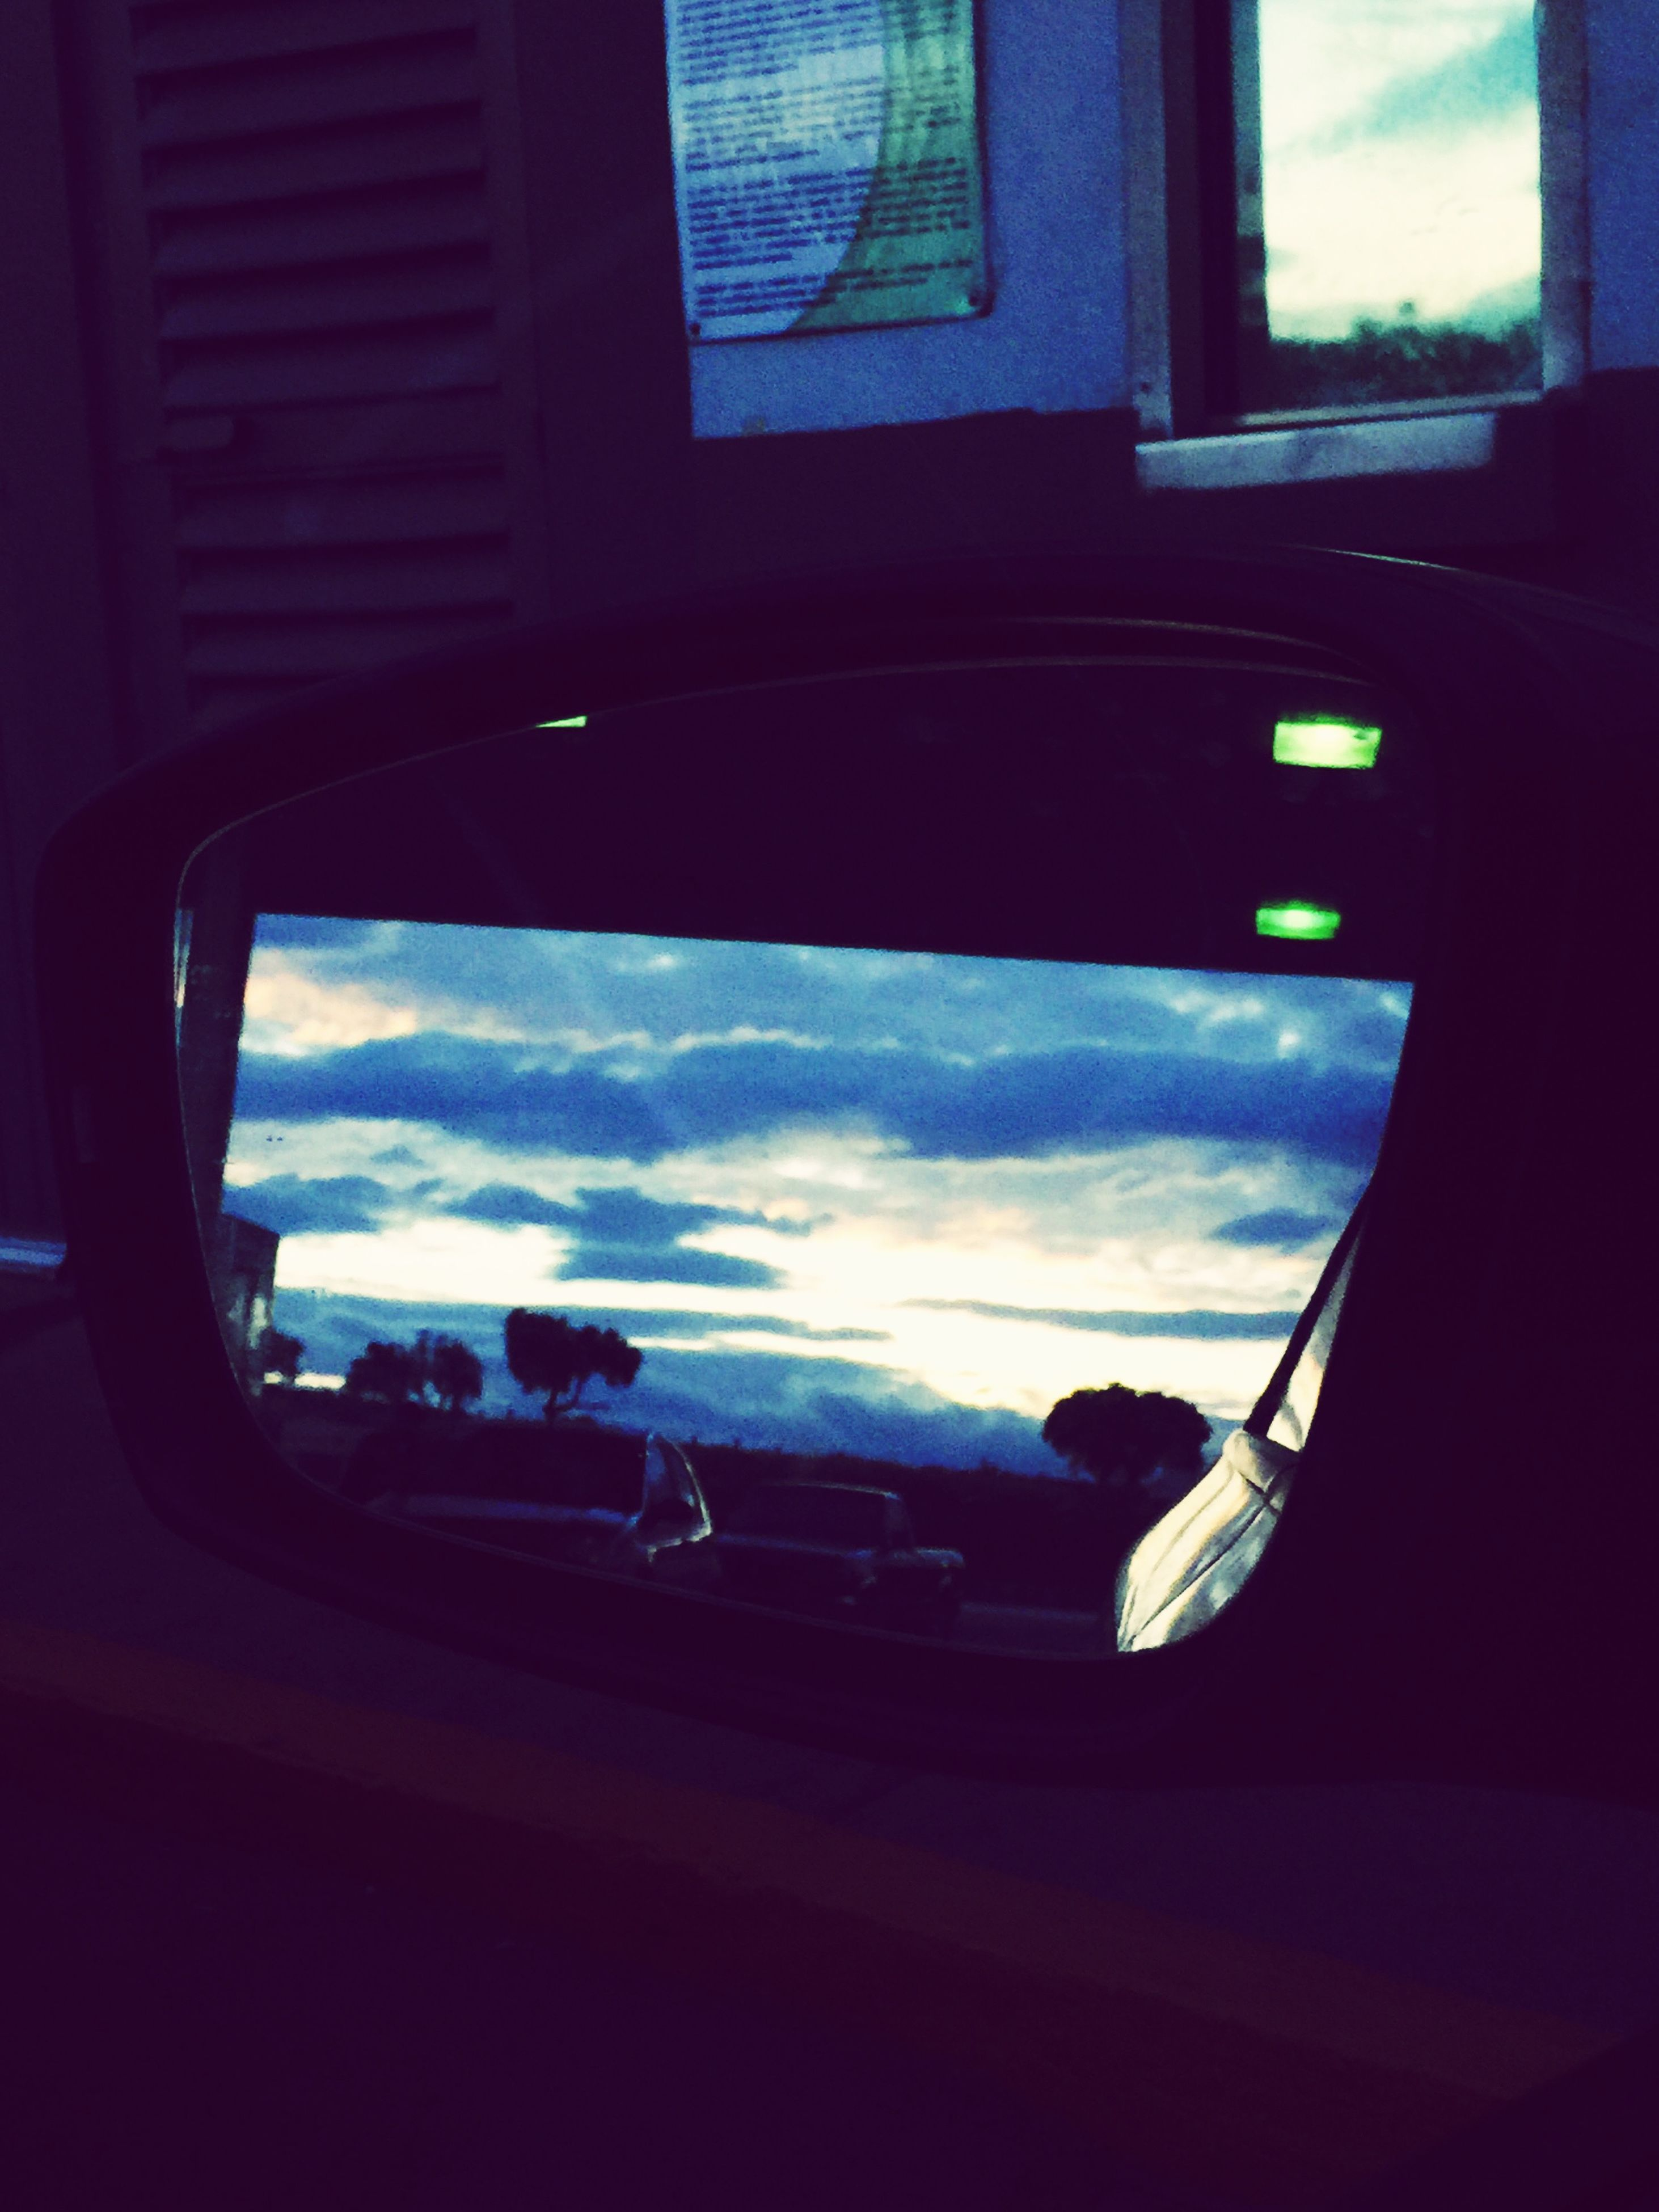 window, transportation, mode of transport, glass - material, transparent, vehicle interior, car, land vehicle, indoors, sky, looking through window, reflection, car interior, side-view mirror, travel, windshield, cloud - sky, glass, cloud, close-up